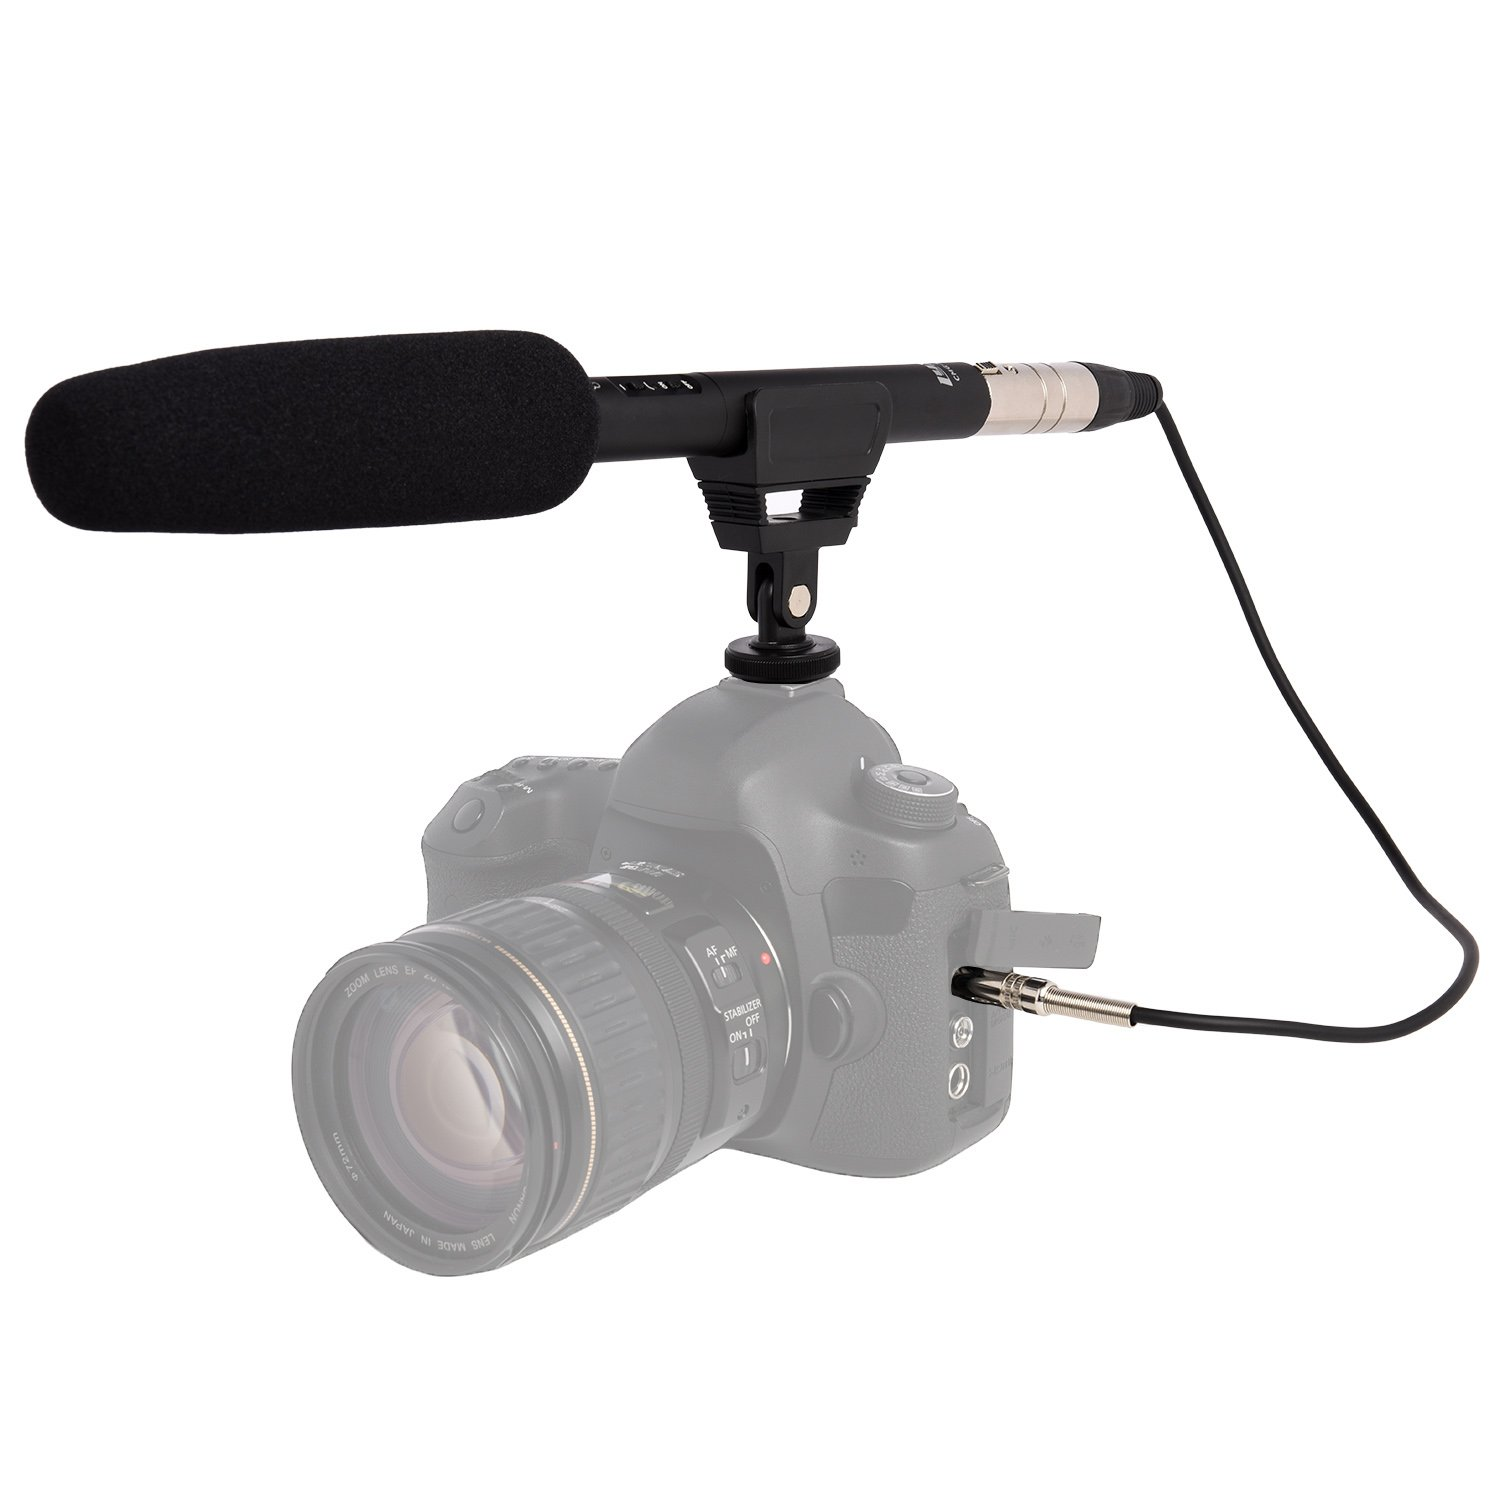 Cheap Microphone Phantom Find Deals On Line At Power Pc Microphones From P48 Or 48 Volts Get Quotations Lyxpro Cmg 50 Condenser Shotgun Battery With Impedance Matching Transformer Cable